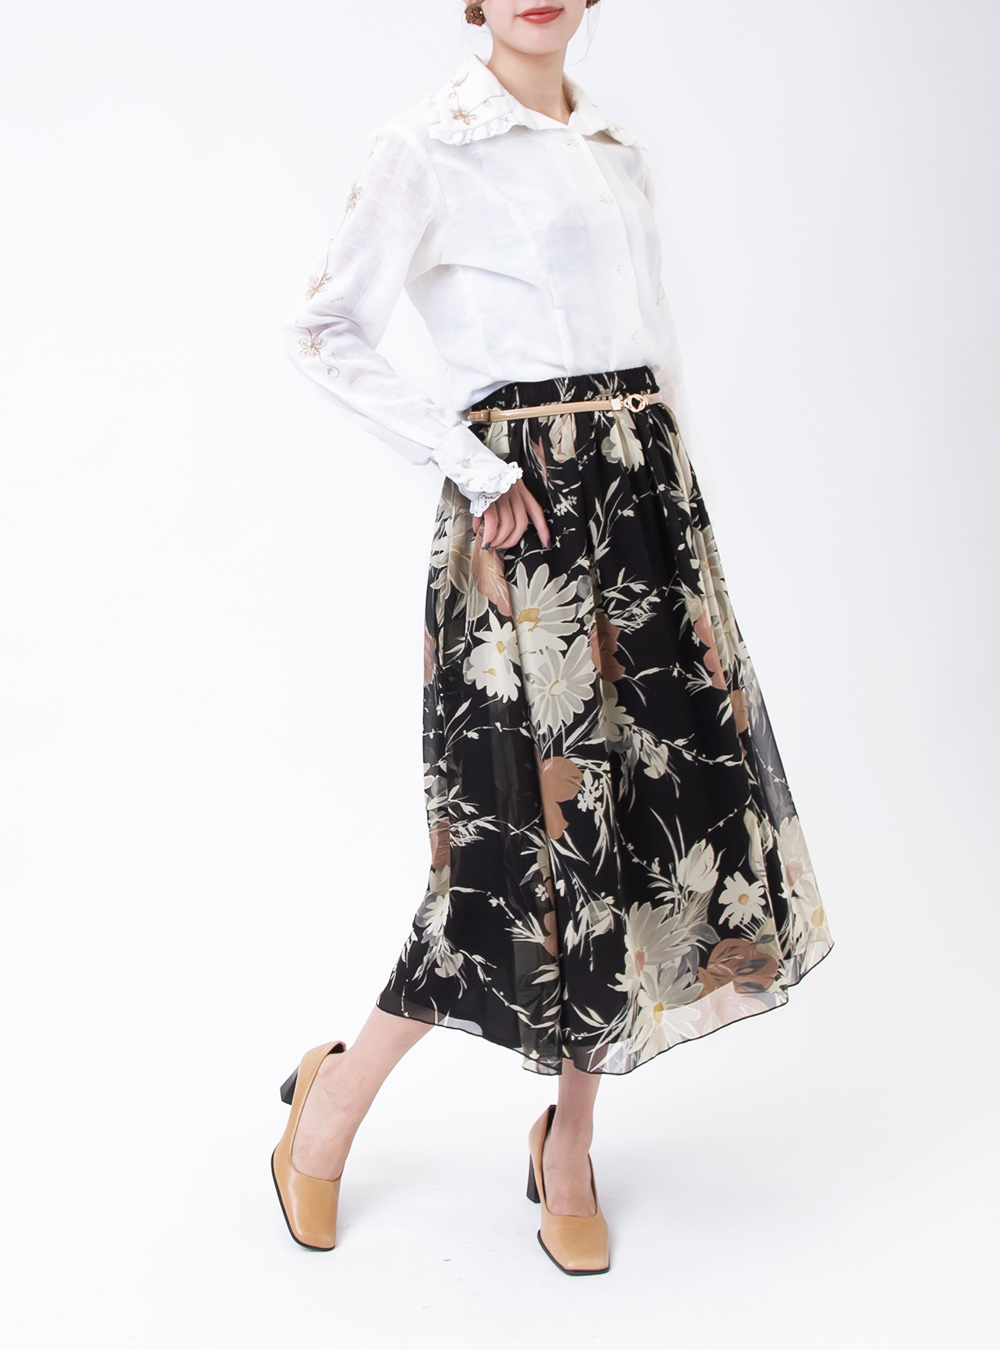 Sheer Black Art Flower Skirt